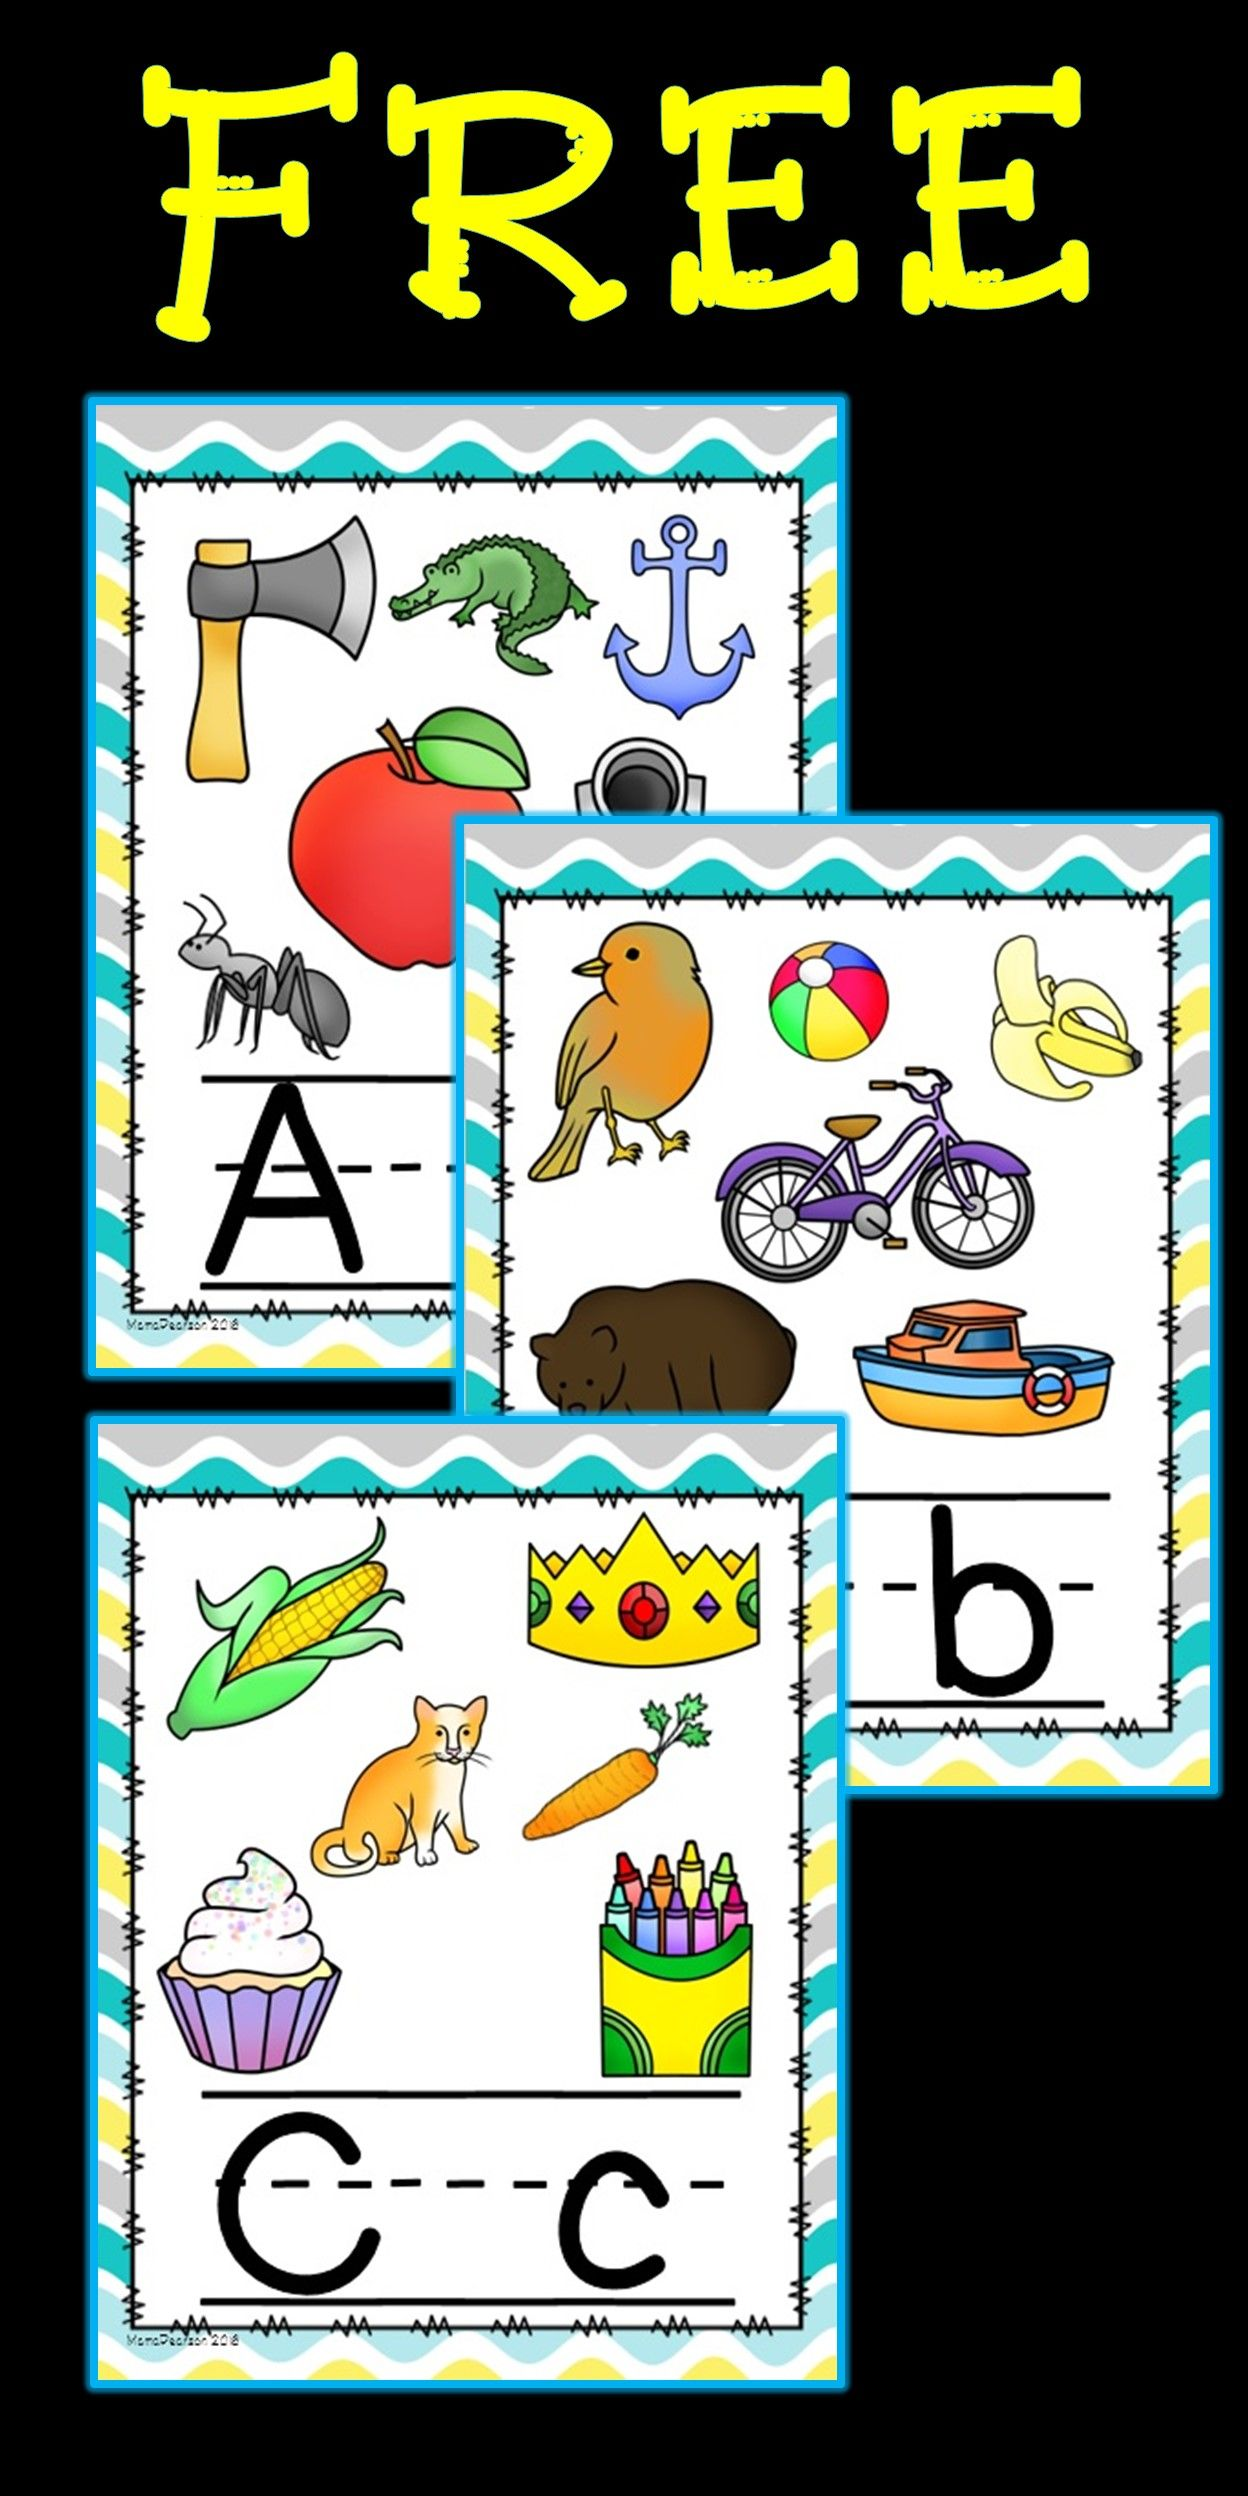 Free clipart images of prek letter wall png royalty free stock FREE!! Full set of alphabet posters with upper and lower case ... png royalty free stock